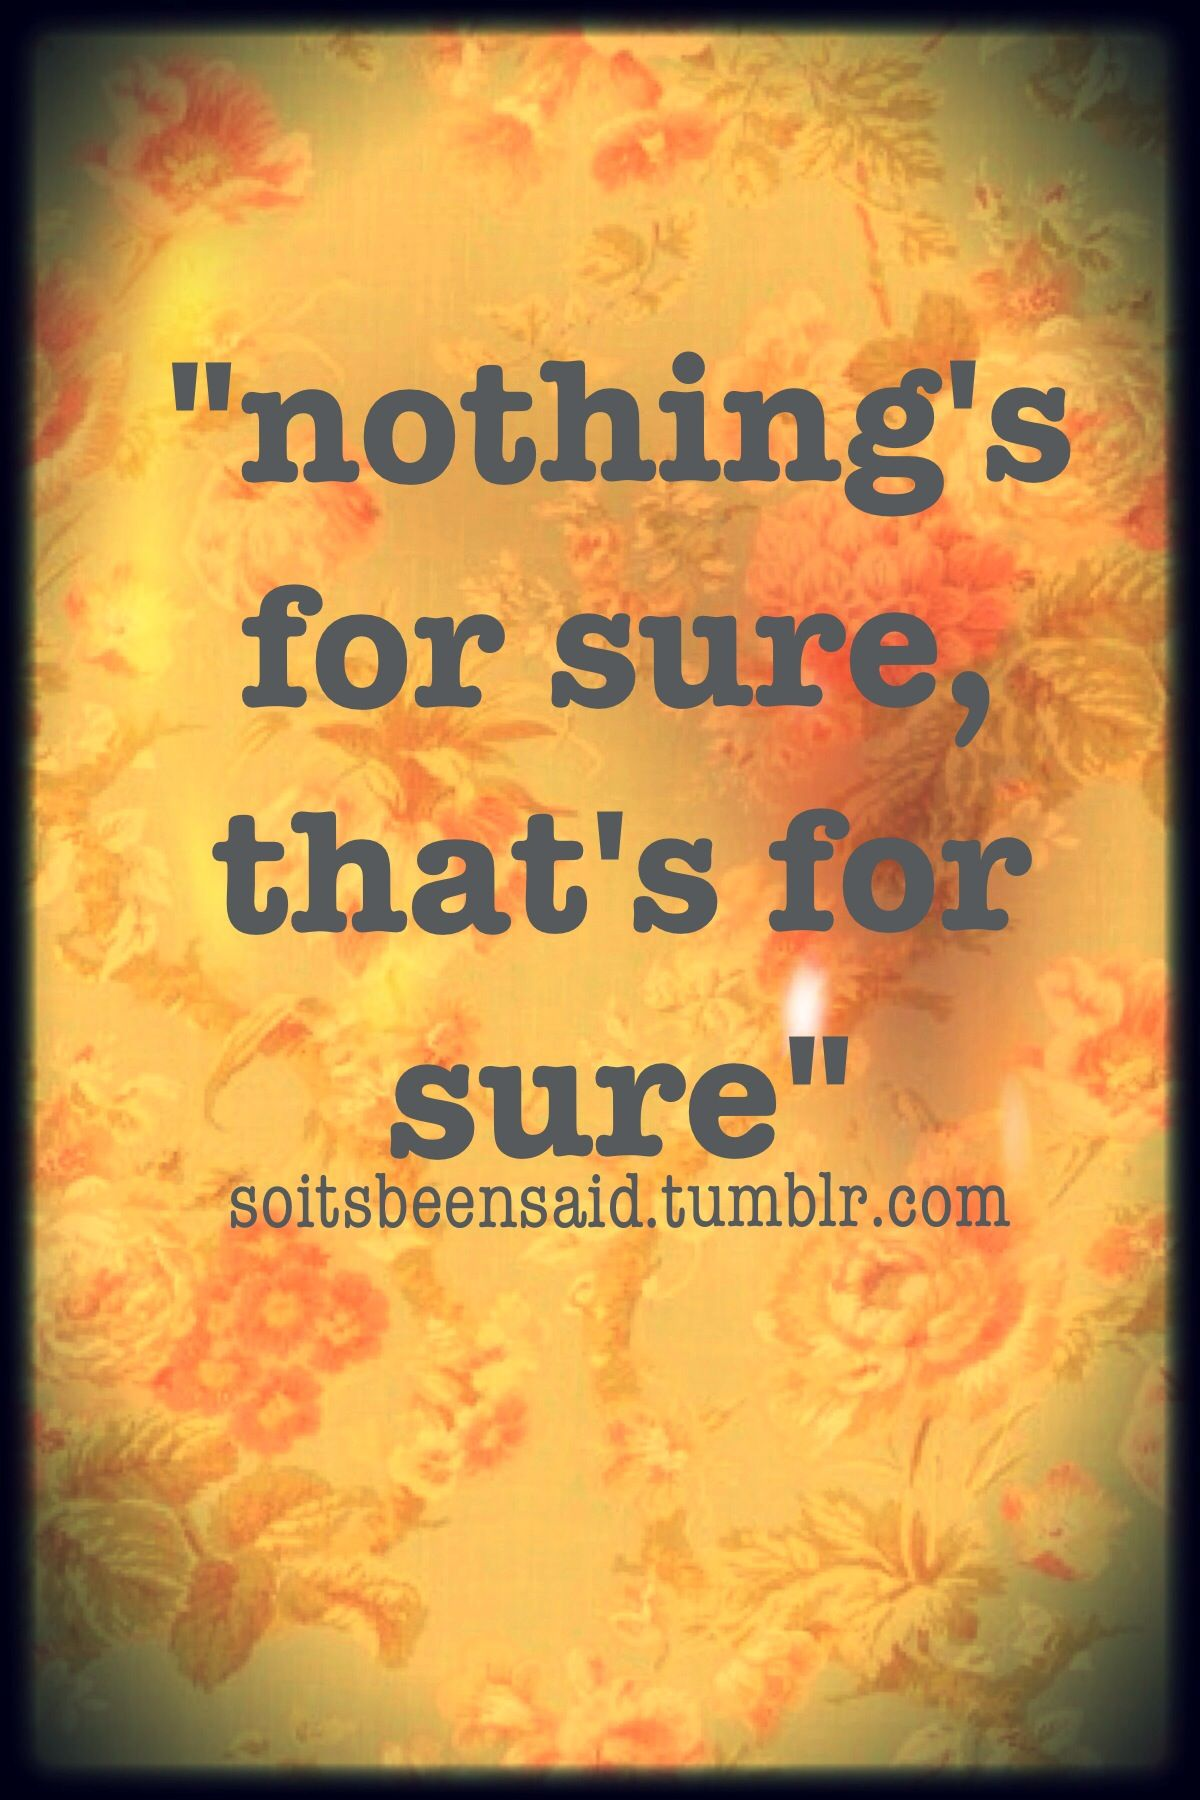 Quote Quotes Quotation Quotations Nothings For Sure Uncertainty